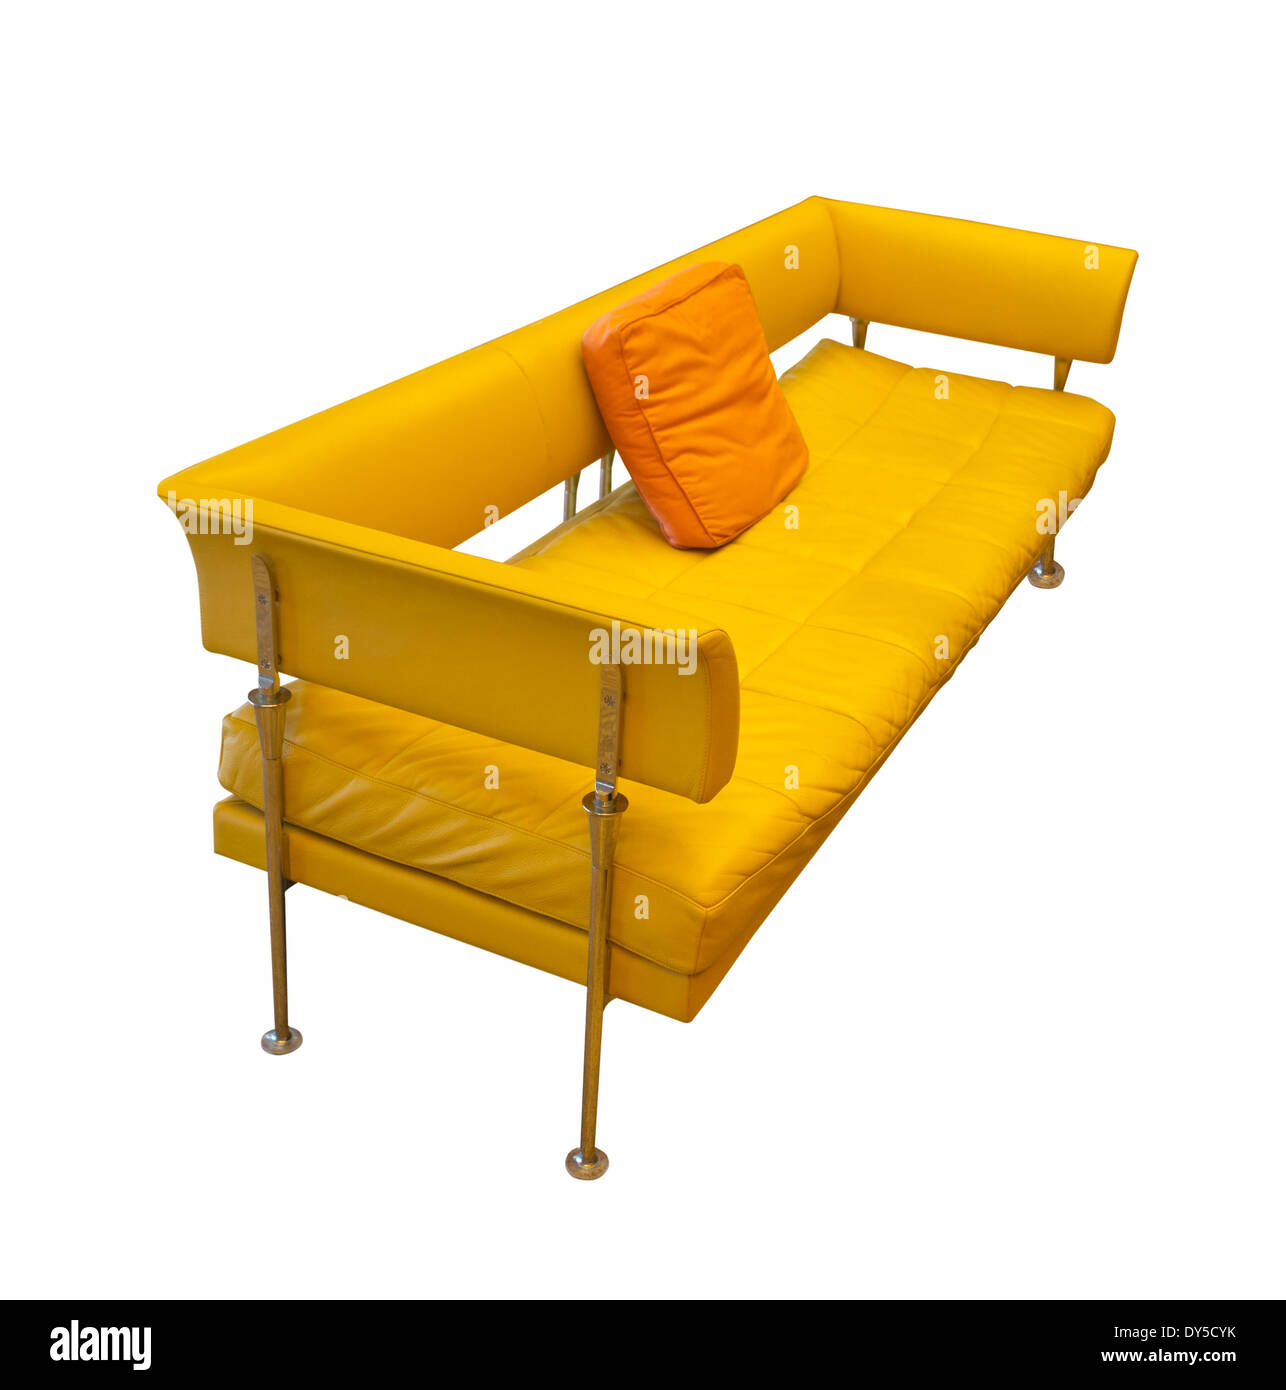 mid century egg chair herman miller chairs seattle modern stock photos yellow contemporary sofa image